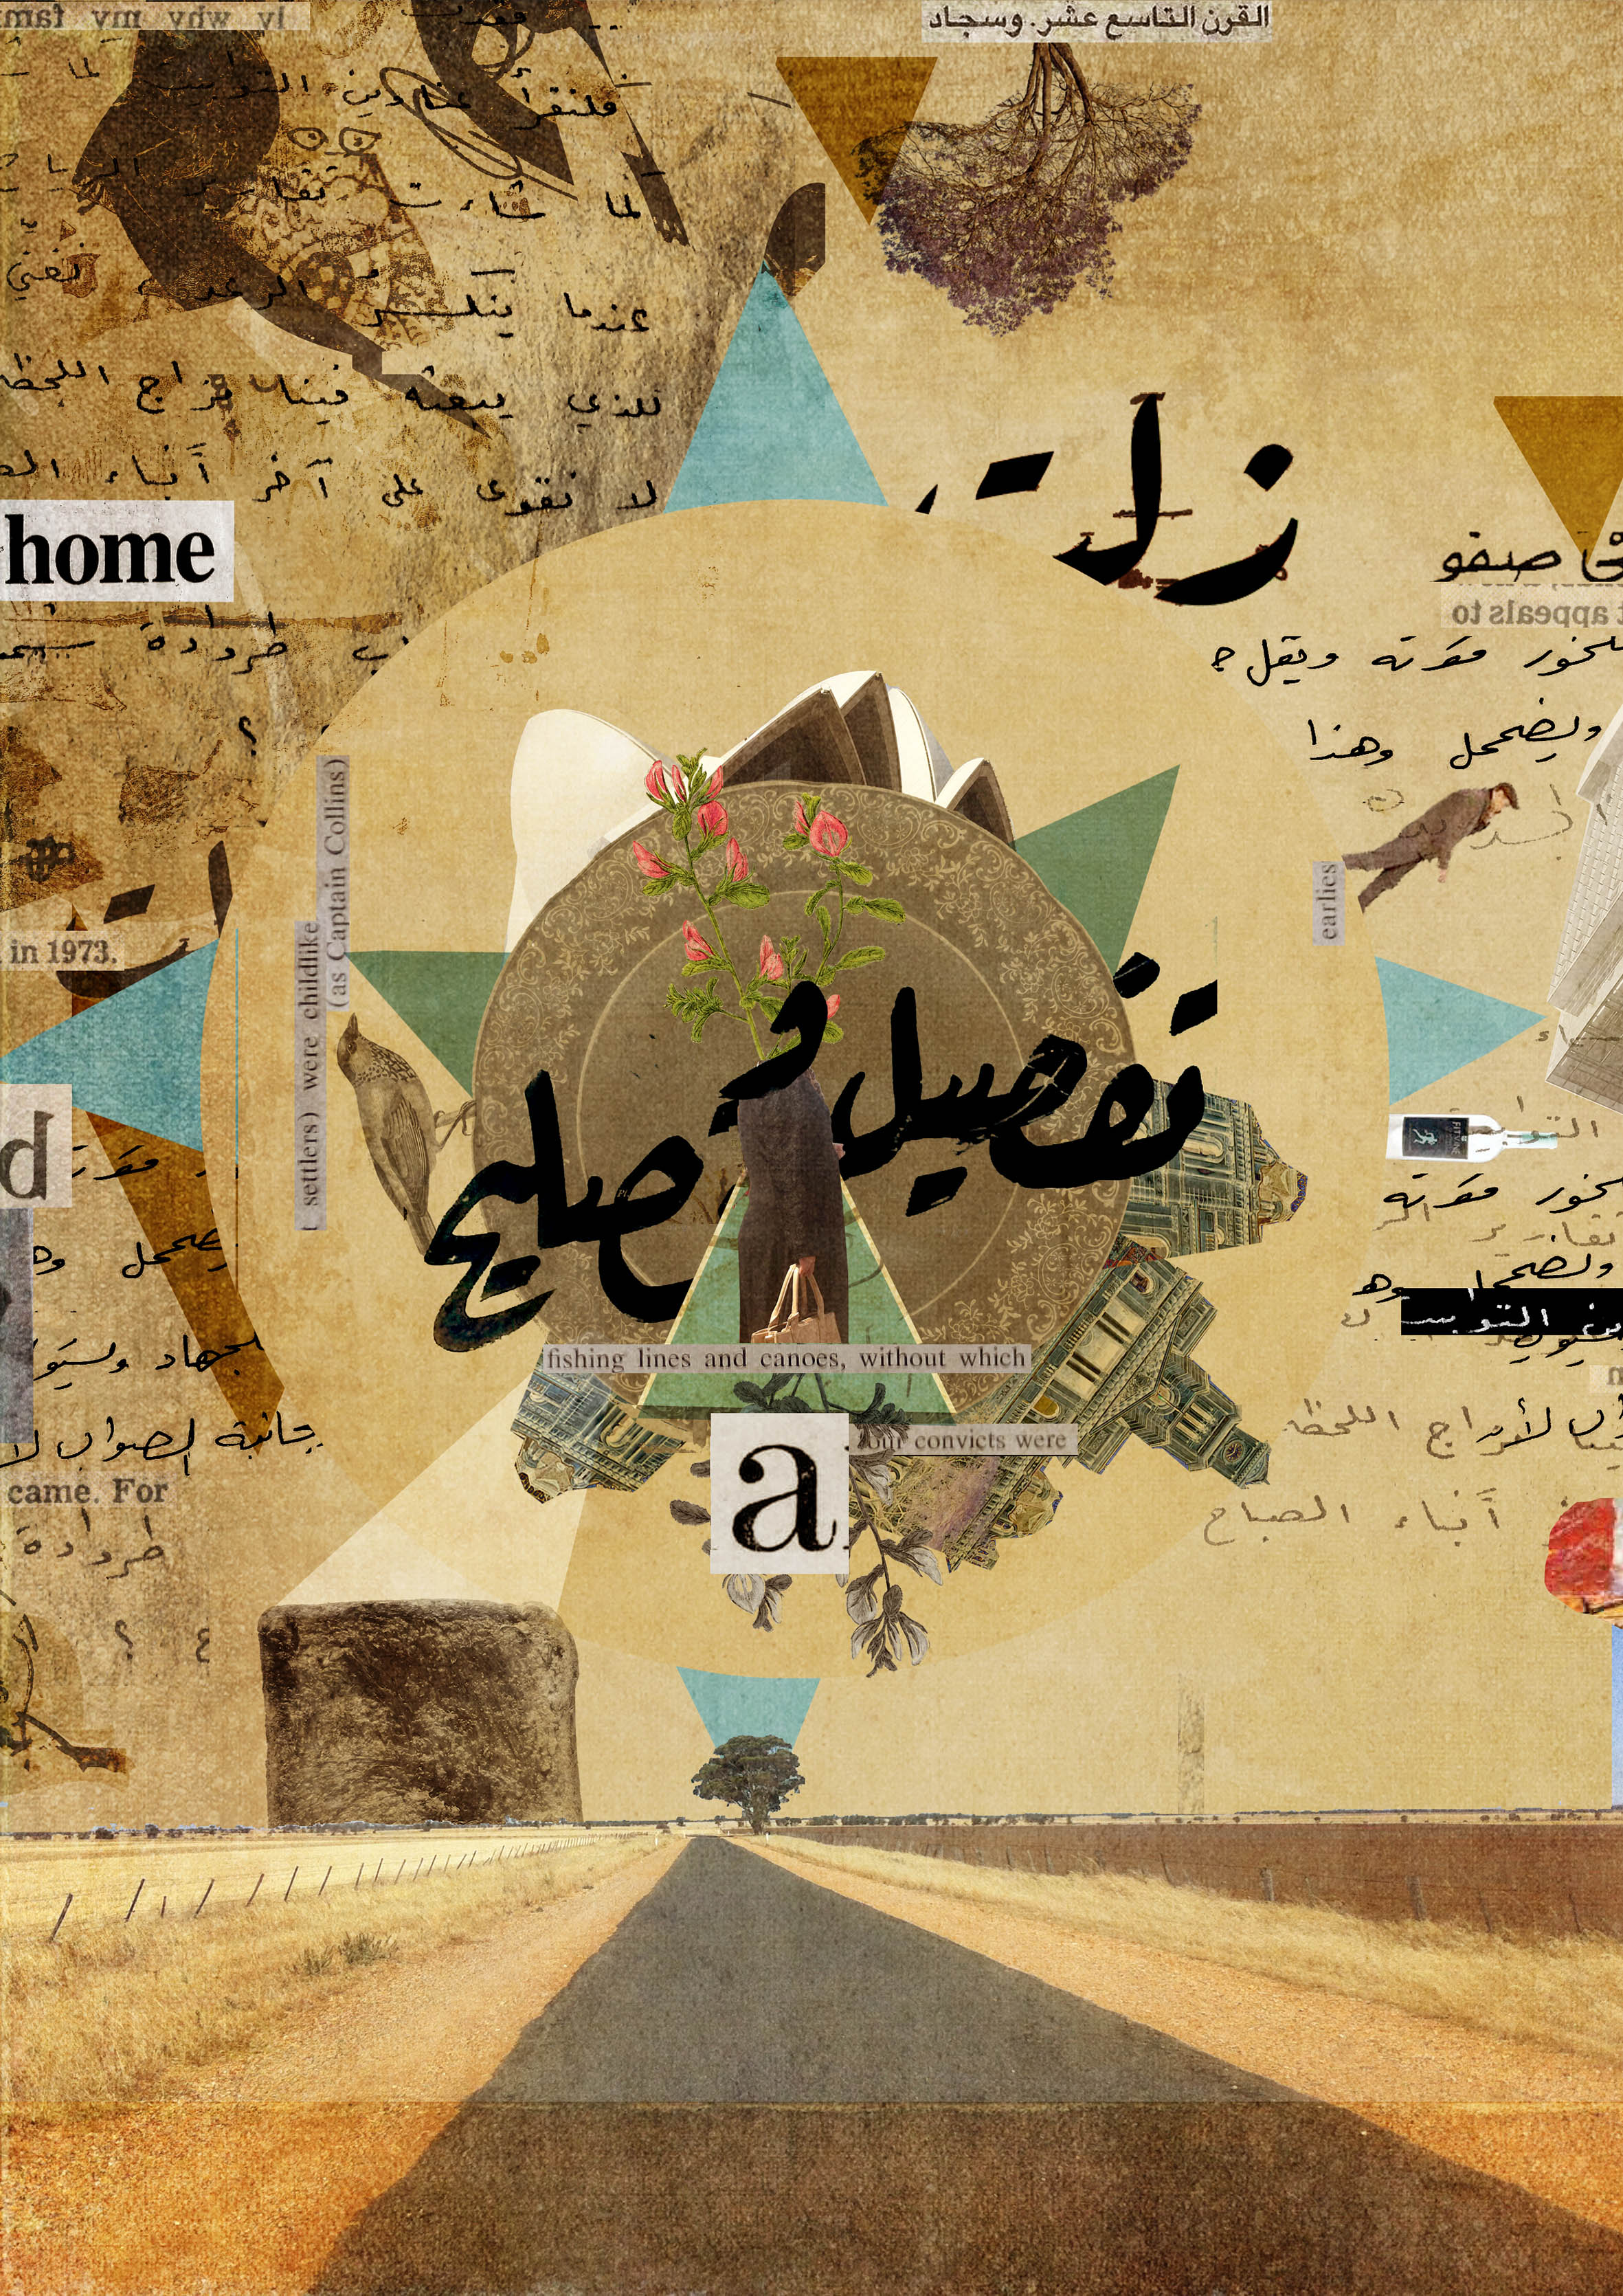 Ahmed ElKhalidi,  So Far from Home,  2018, Arabic Fix and Repair, digital print on museum rag, 21 x 29cm,